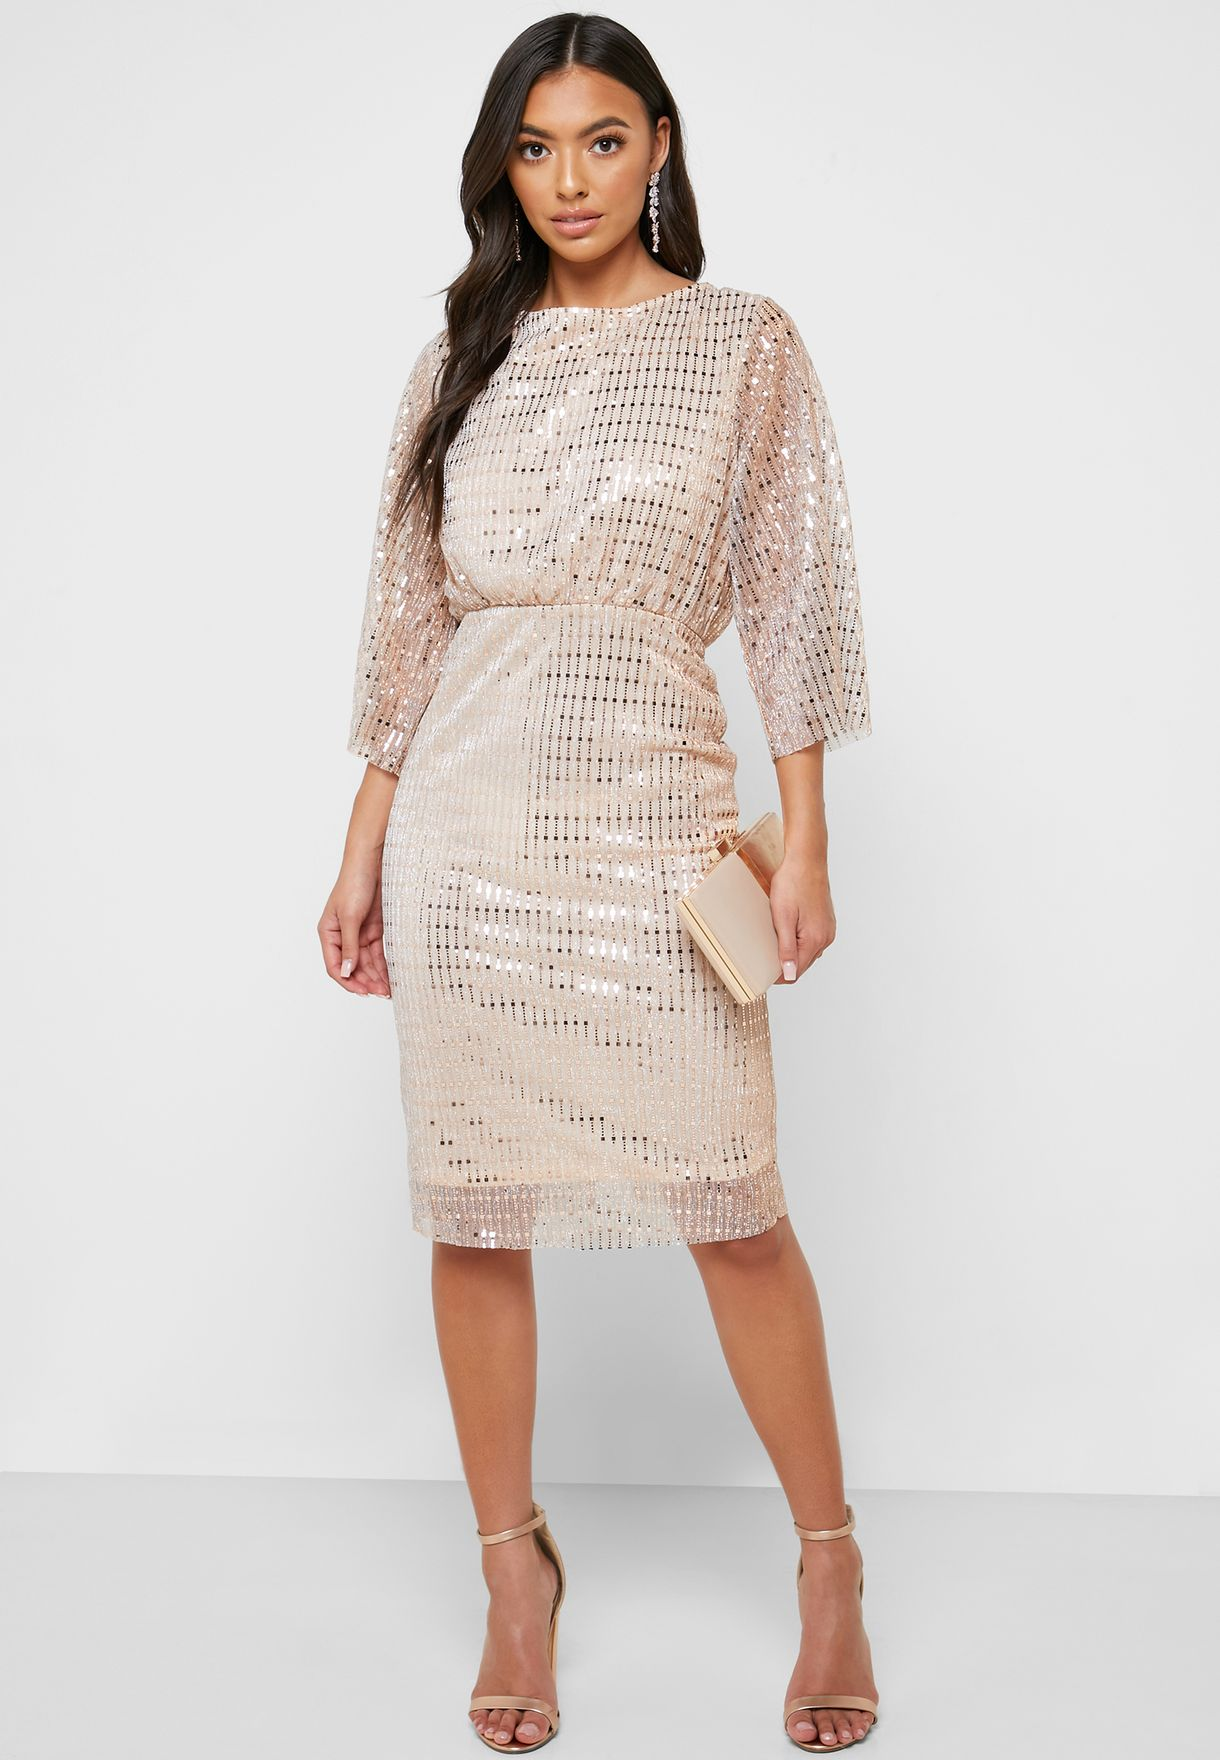 Embellished 3/4 Sleeve Dress